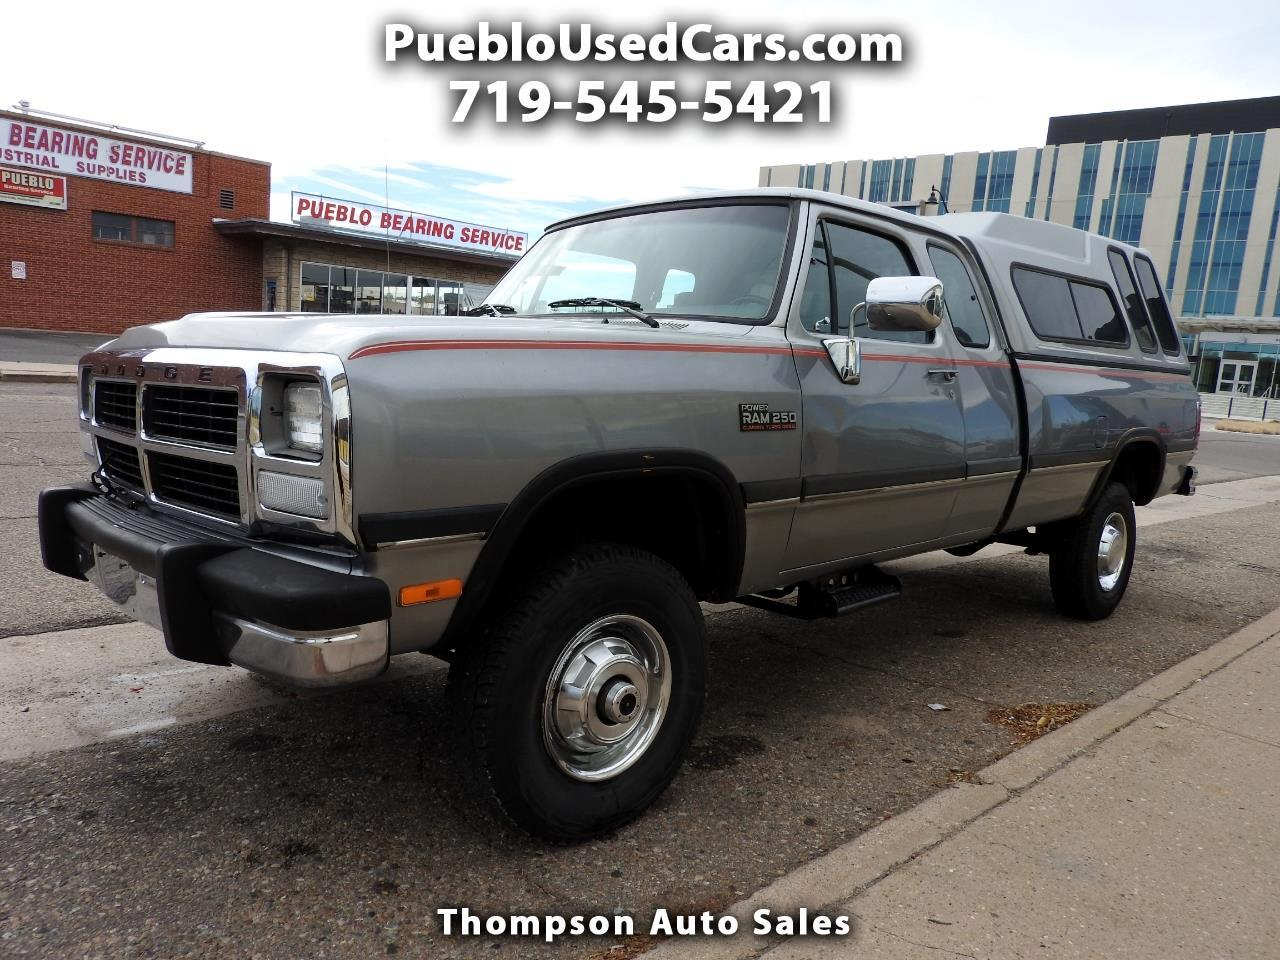 1992 Dodge RAM 250 Club Cab 8-ft. Bed 4WD